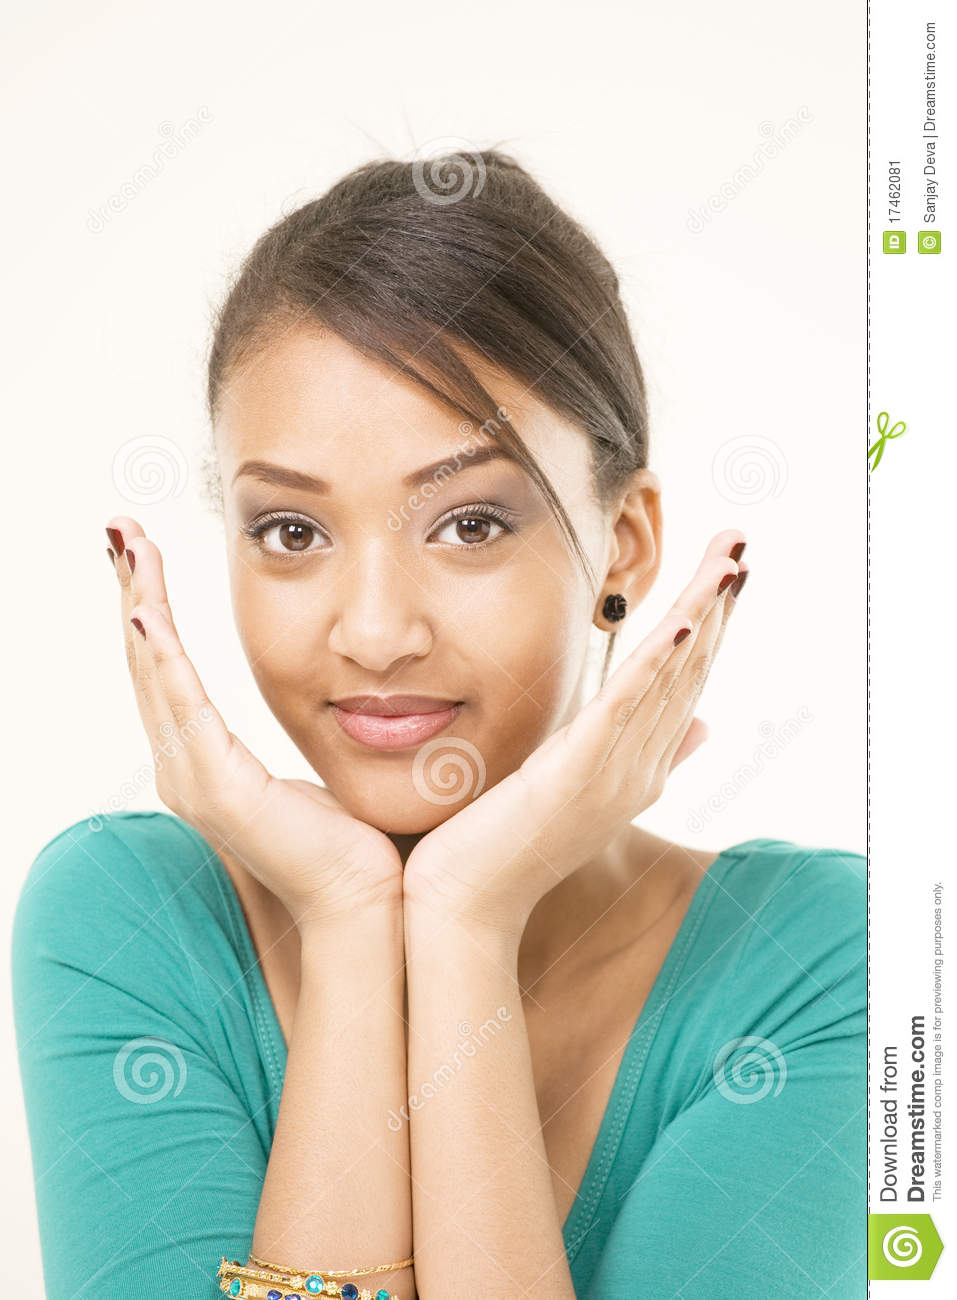 Cute Girl Interested Expression Stock Image - Image: 17462081